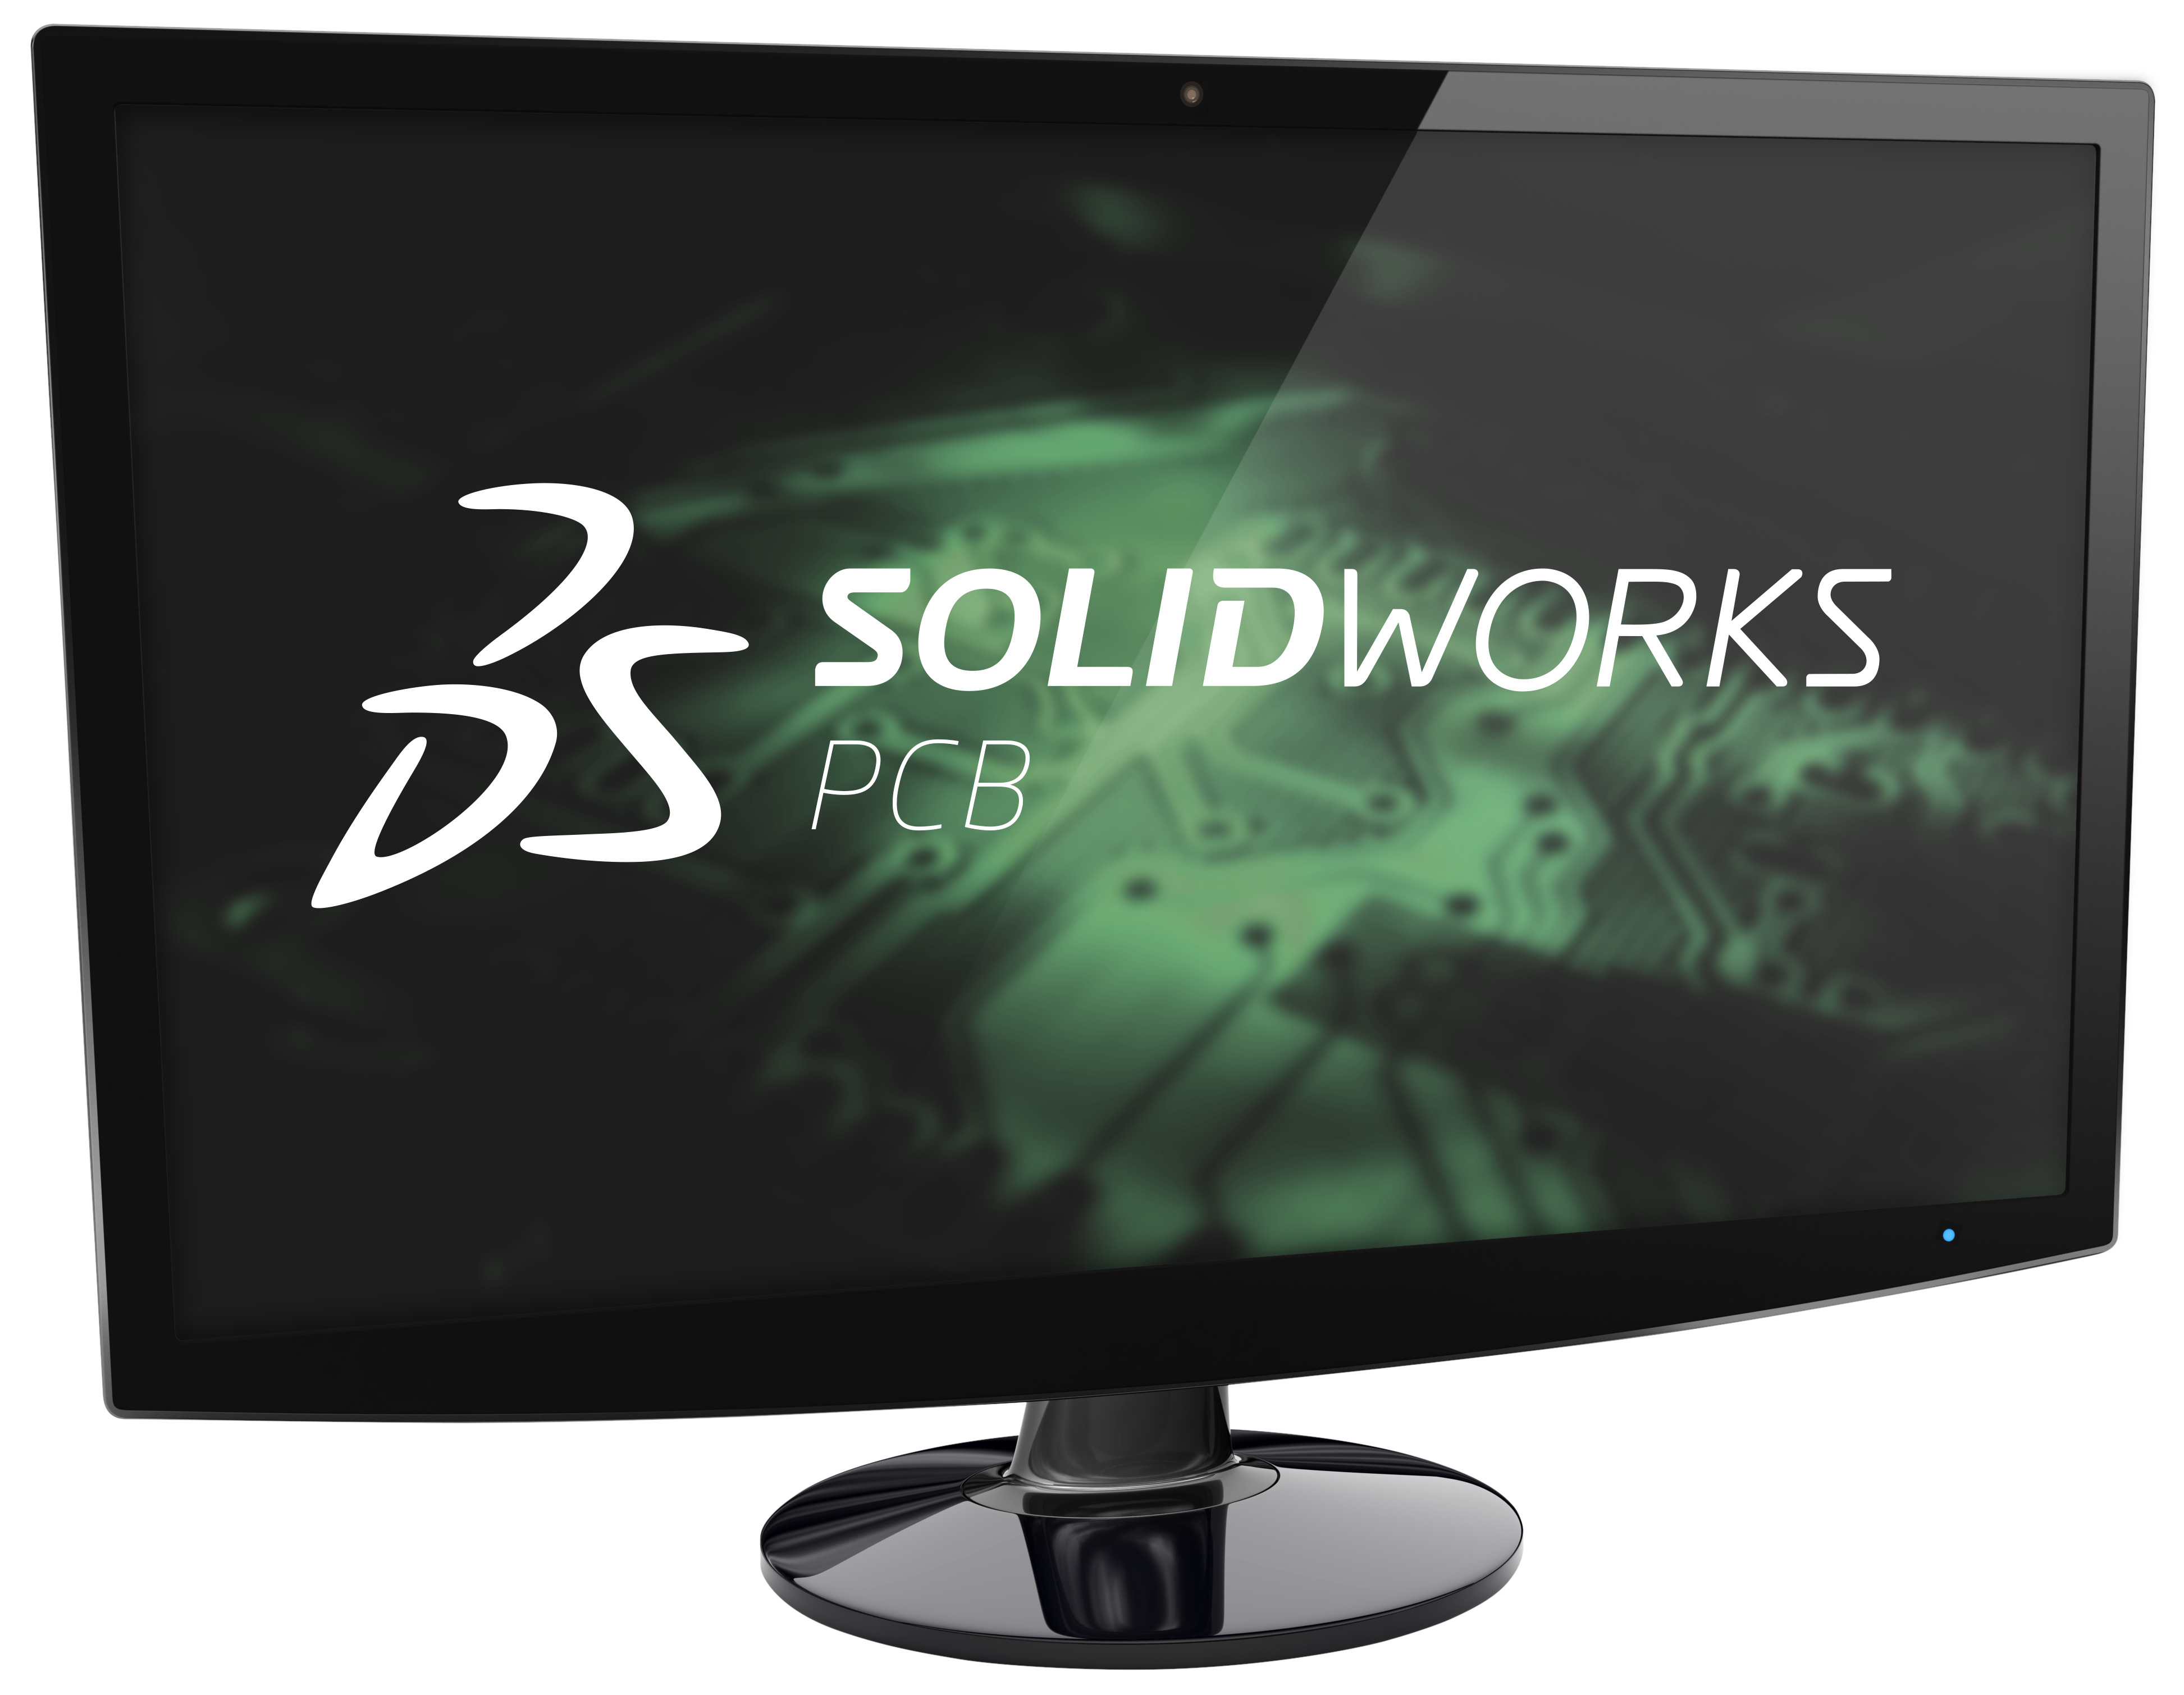 How to Install SOLIDWORKS PCB